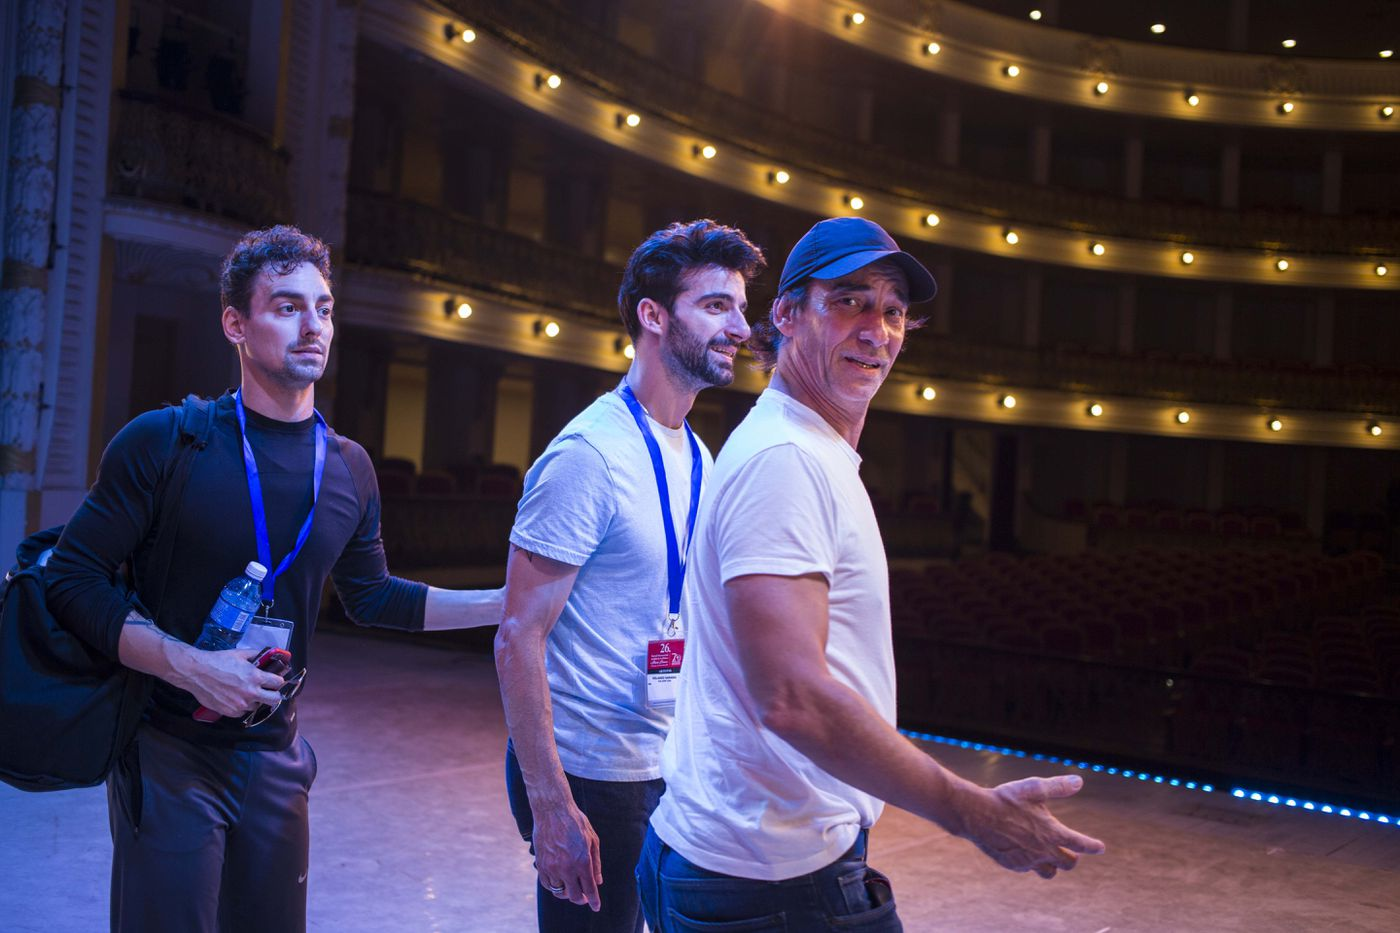 In this Oct. 30, 2018 photo, Cuban expatriate ballet dancers Daniel Sarabia, left, Rolando Sarabia, center, and their father, retired dancer, Rolando Sarabia, visit the grand theatre in Havana, Cuba. As a young dancer compared with ballet legends Vaslav Nijinsky and Mikhail Baryshnikov, Rolando Sarabia made headlines around the world when he abandoned Cuba in 2005 for a career in the United States. (AP Photo/Desmond Boylan)